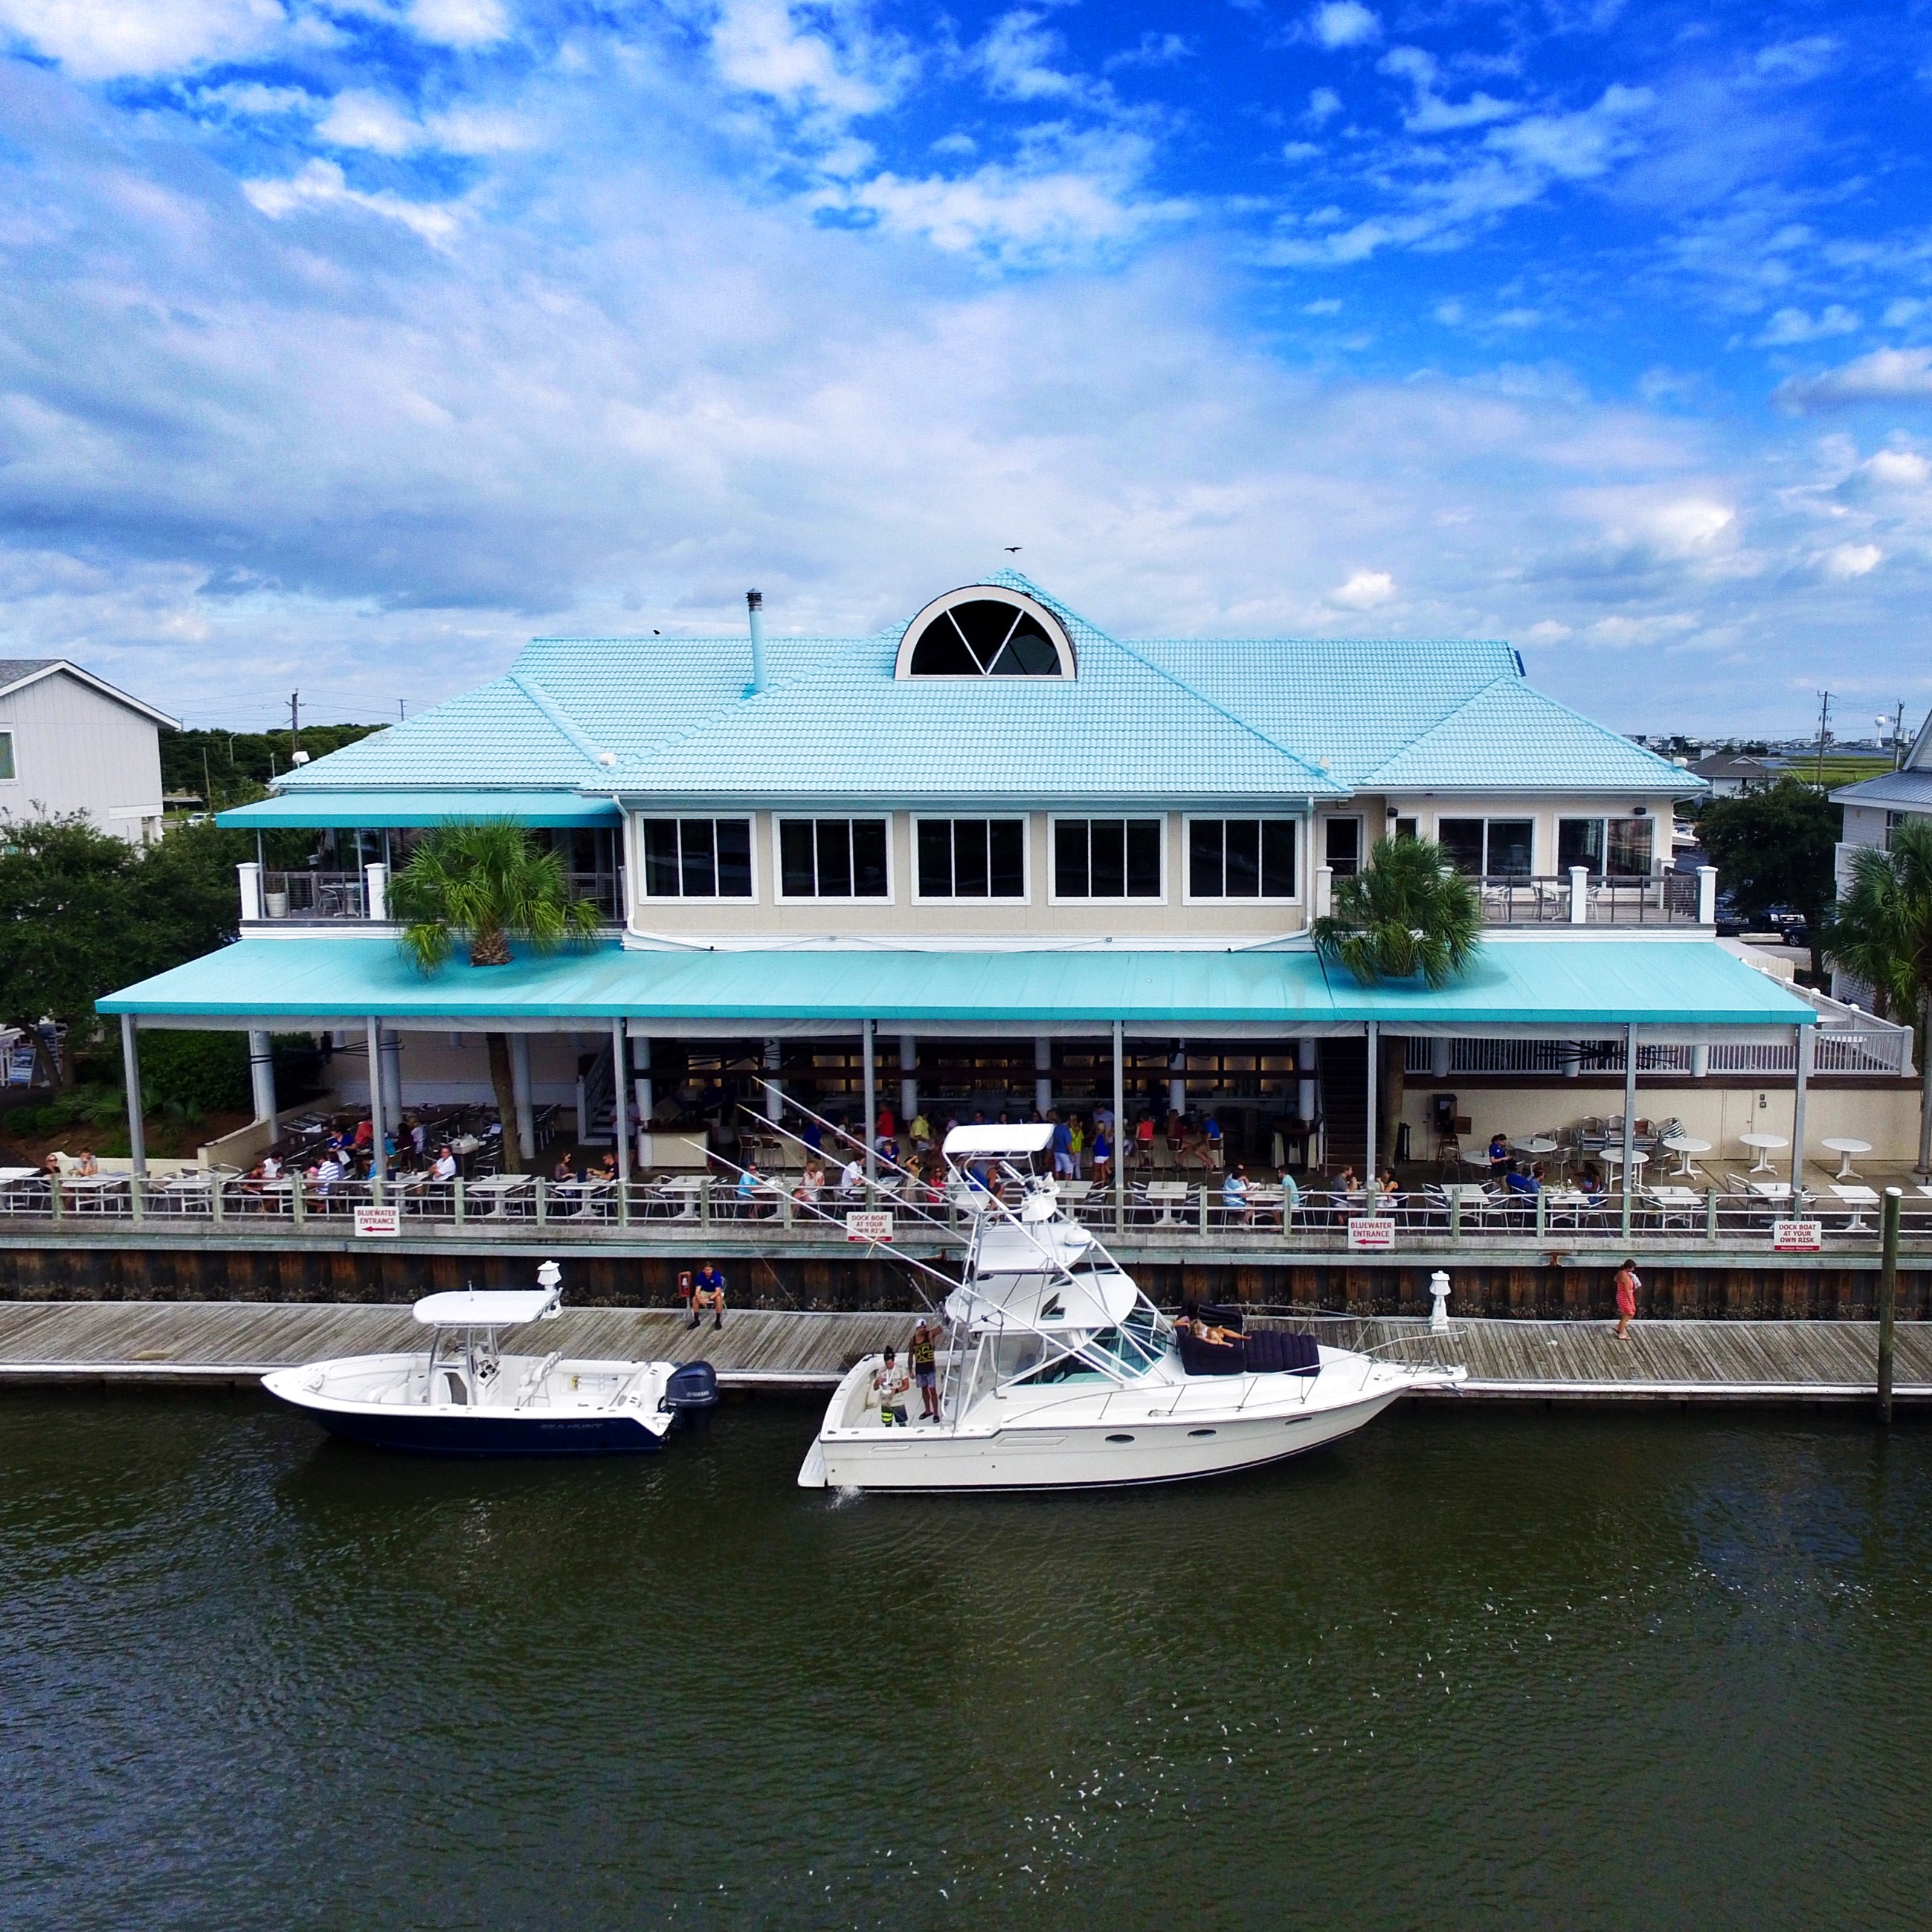 Wilmington Waterway Cruise